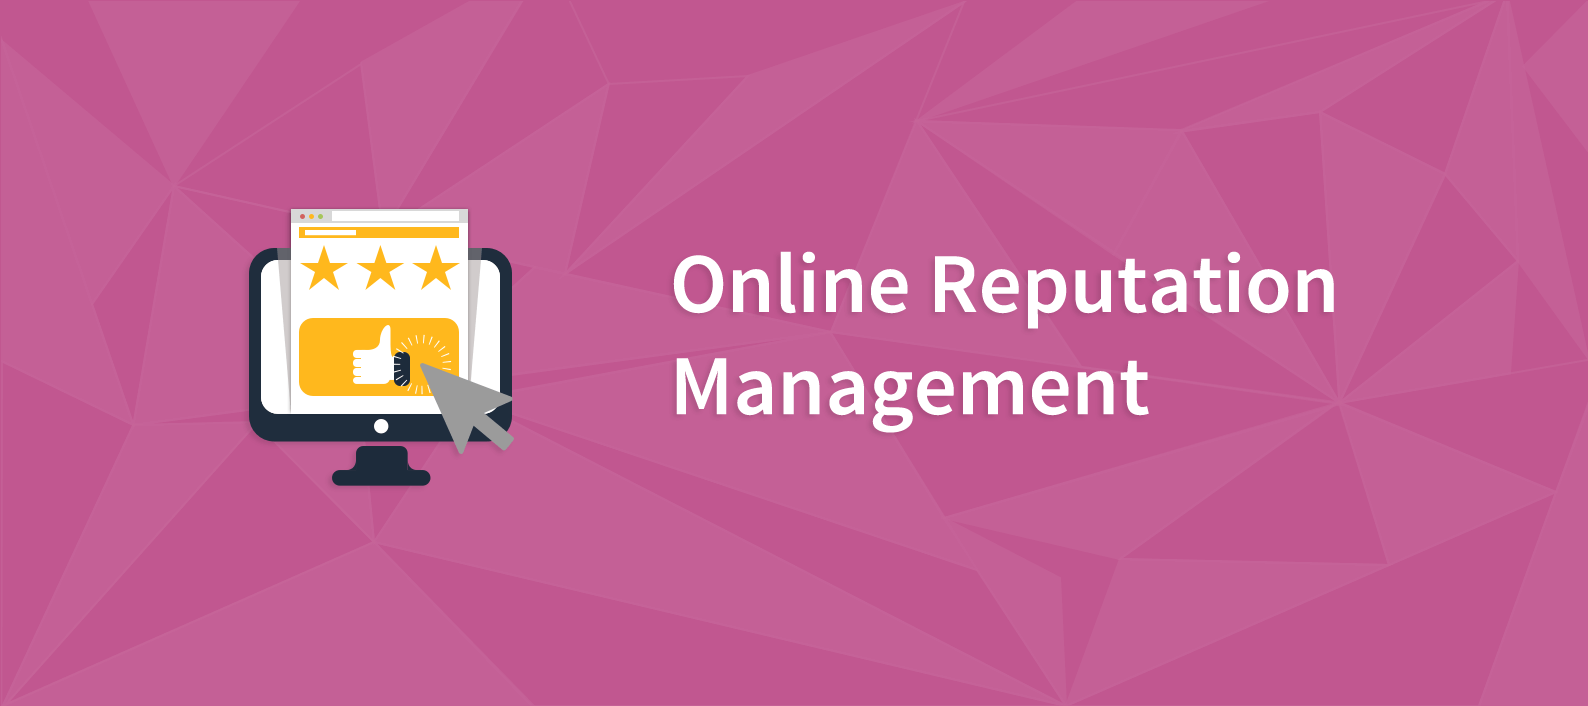 online reputation Online reputation management ethics with moral, social philosophies for  engaging digital reputation repair strategies notice: this program does not tread  lightly.